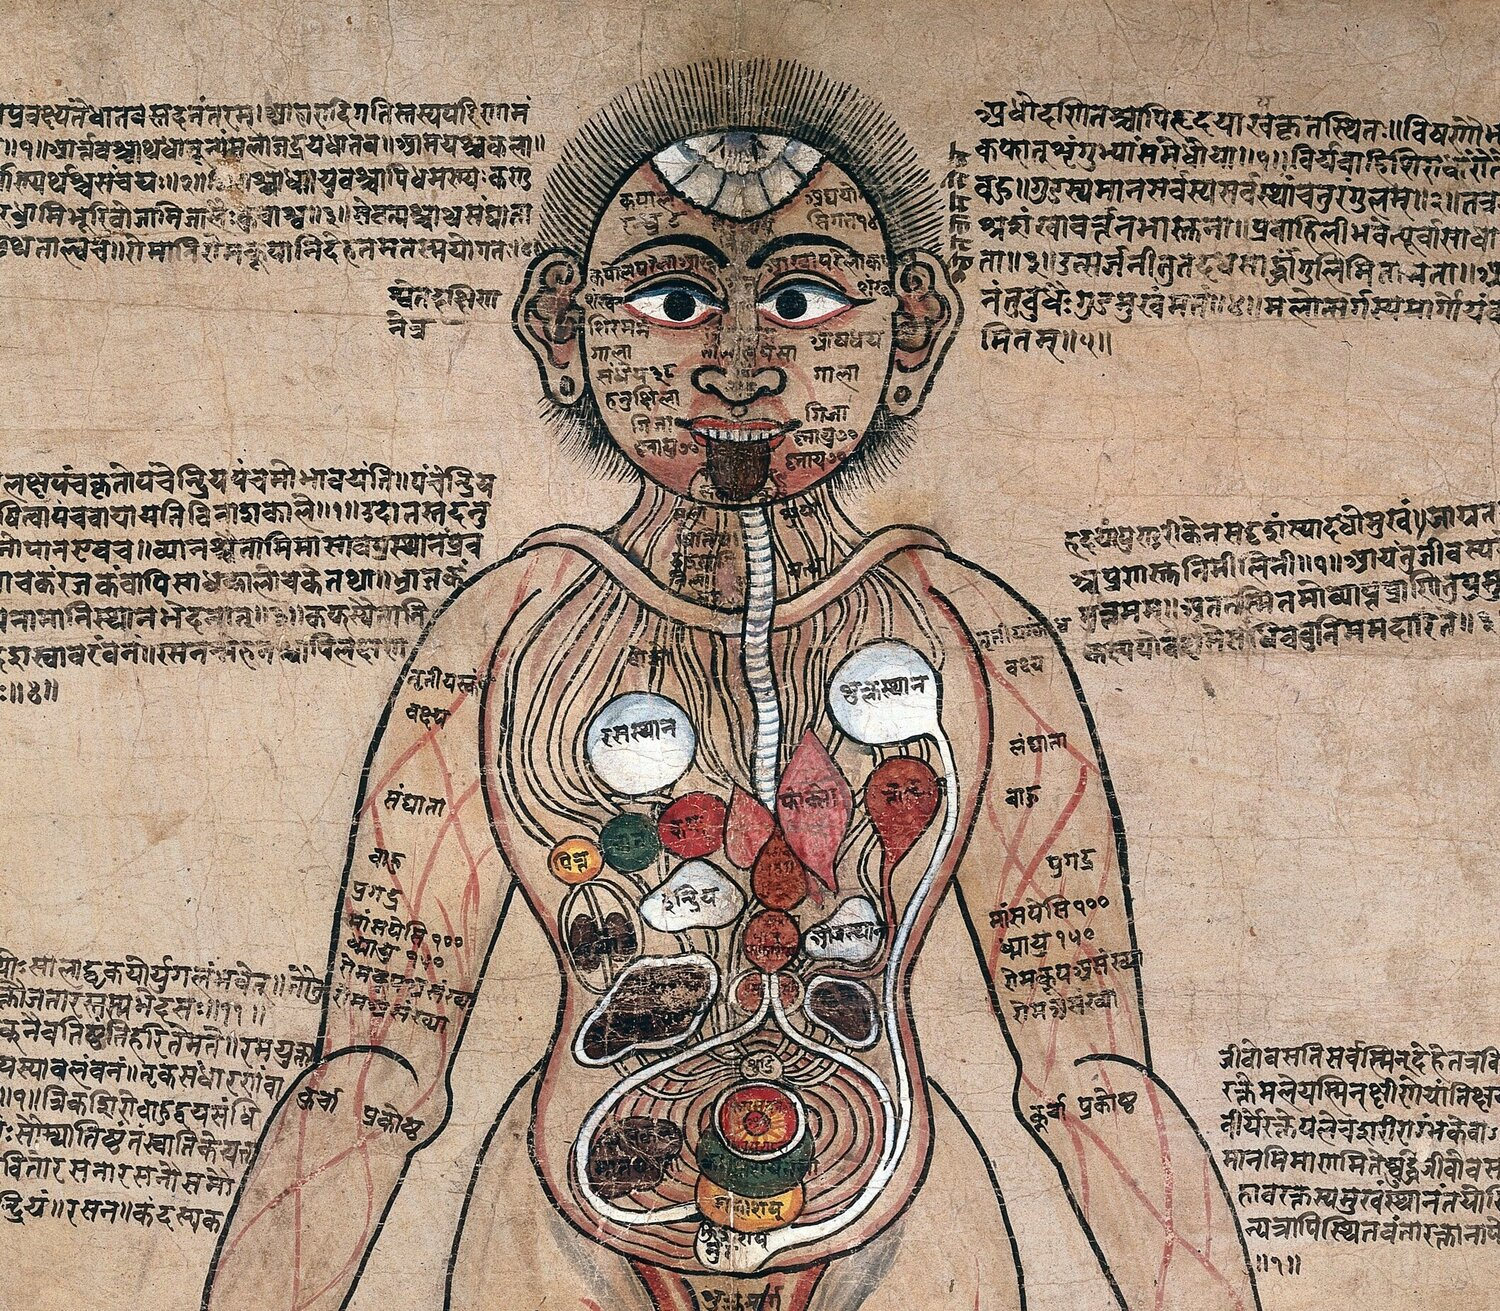 The_Ayurvedic_Man.%2C_c.18th_century_Wellcome_L0017592.jpg